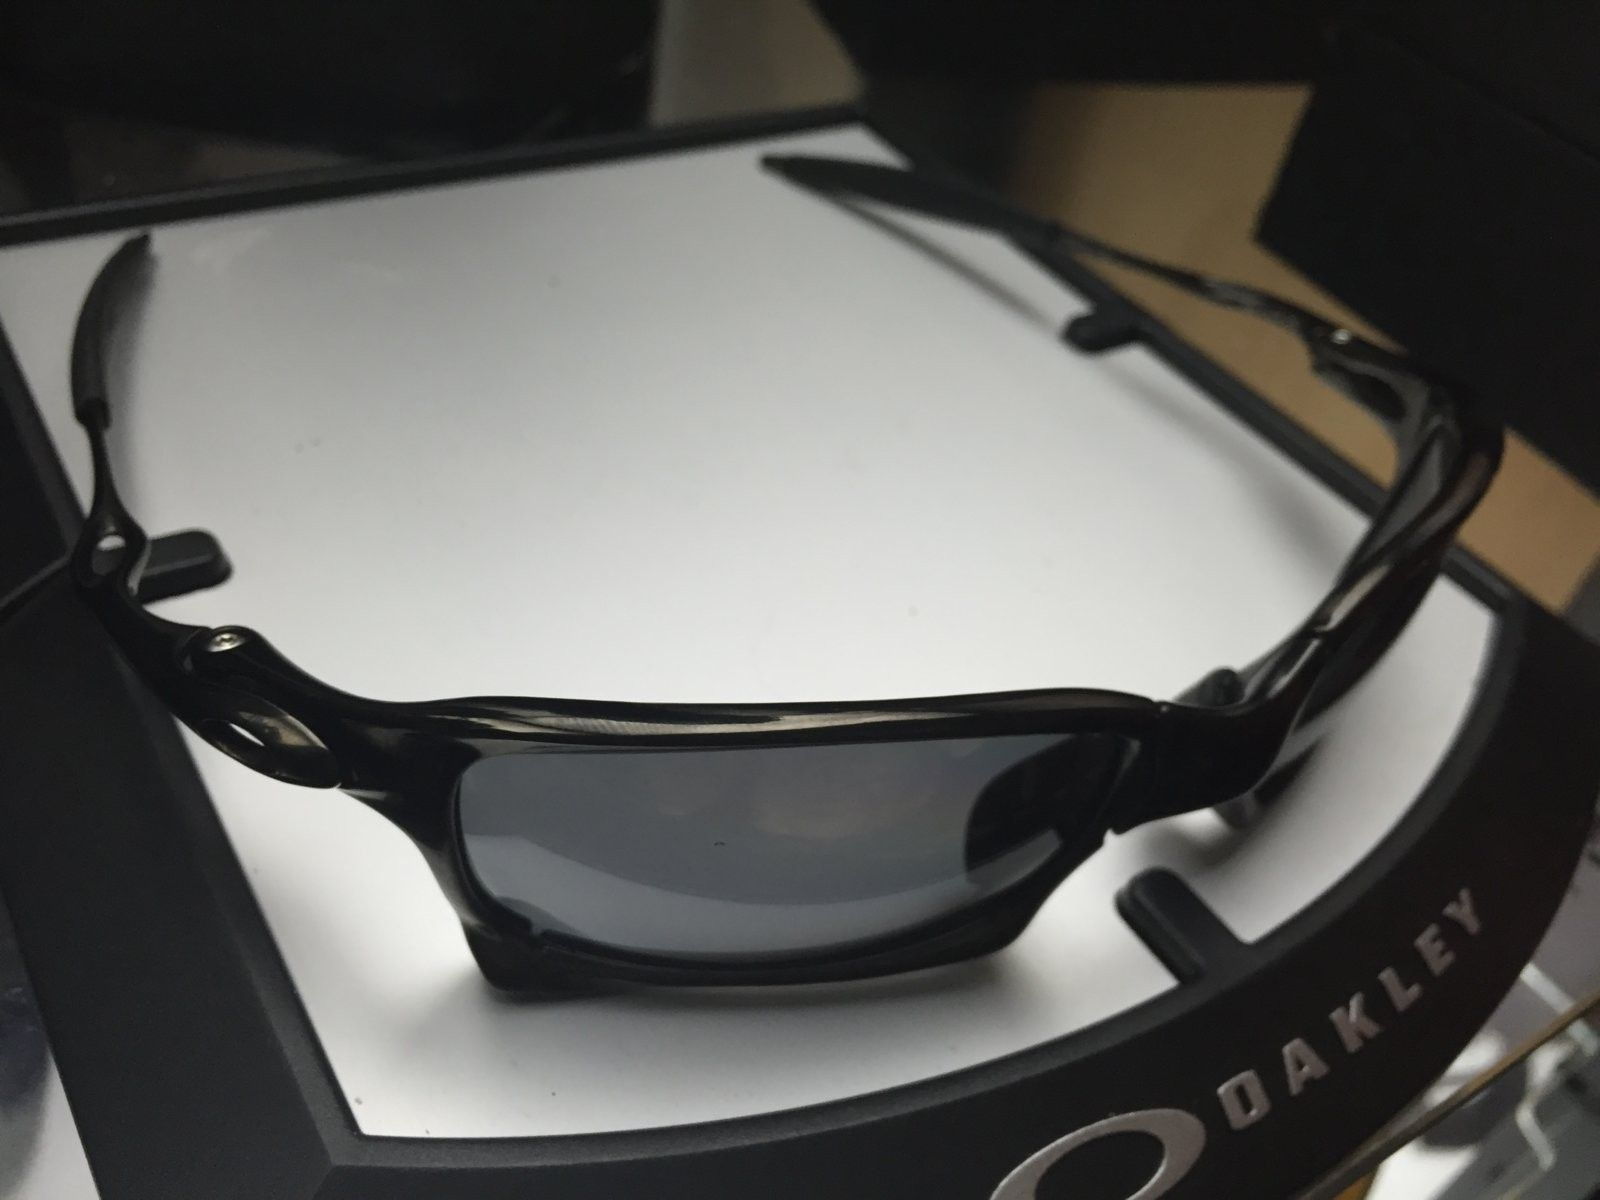 Xsquared carbon polished w/ black iridium Polarized SKU: 006011-06 - #SOLD - image.jpeg